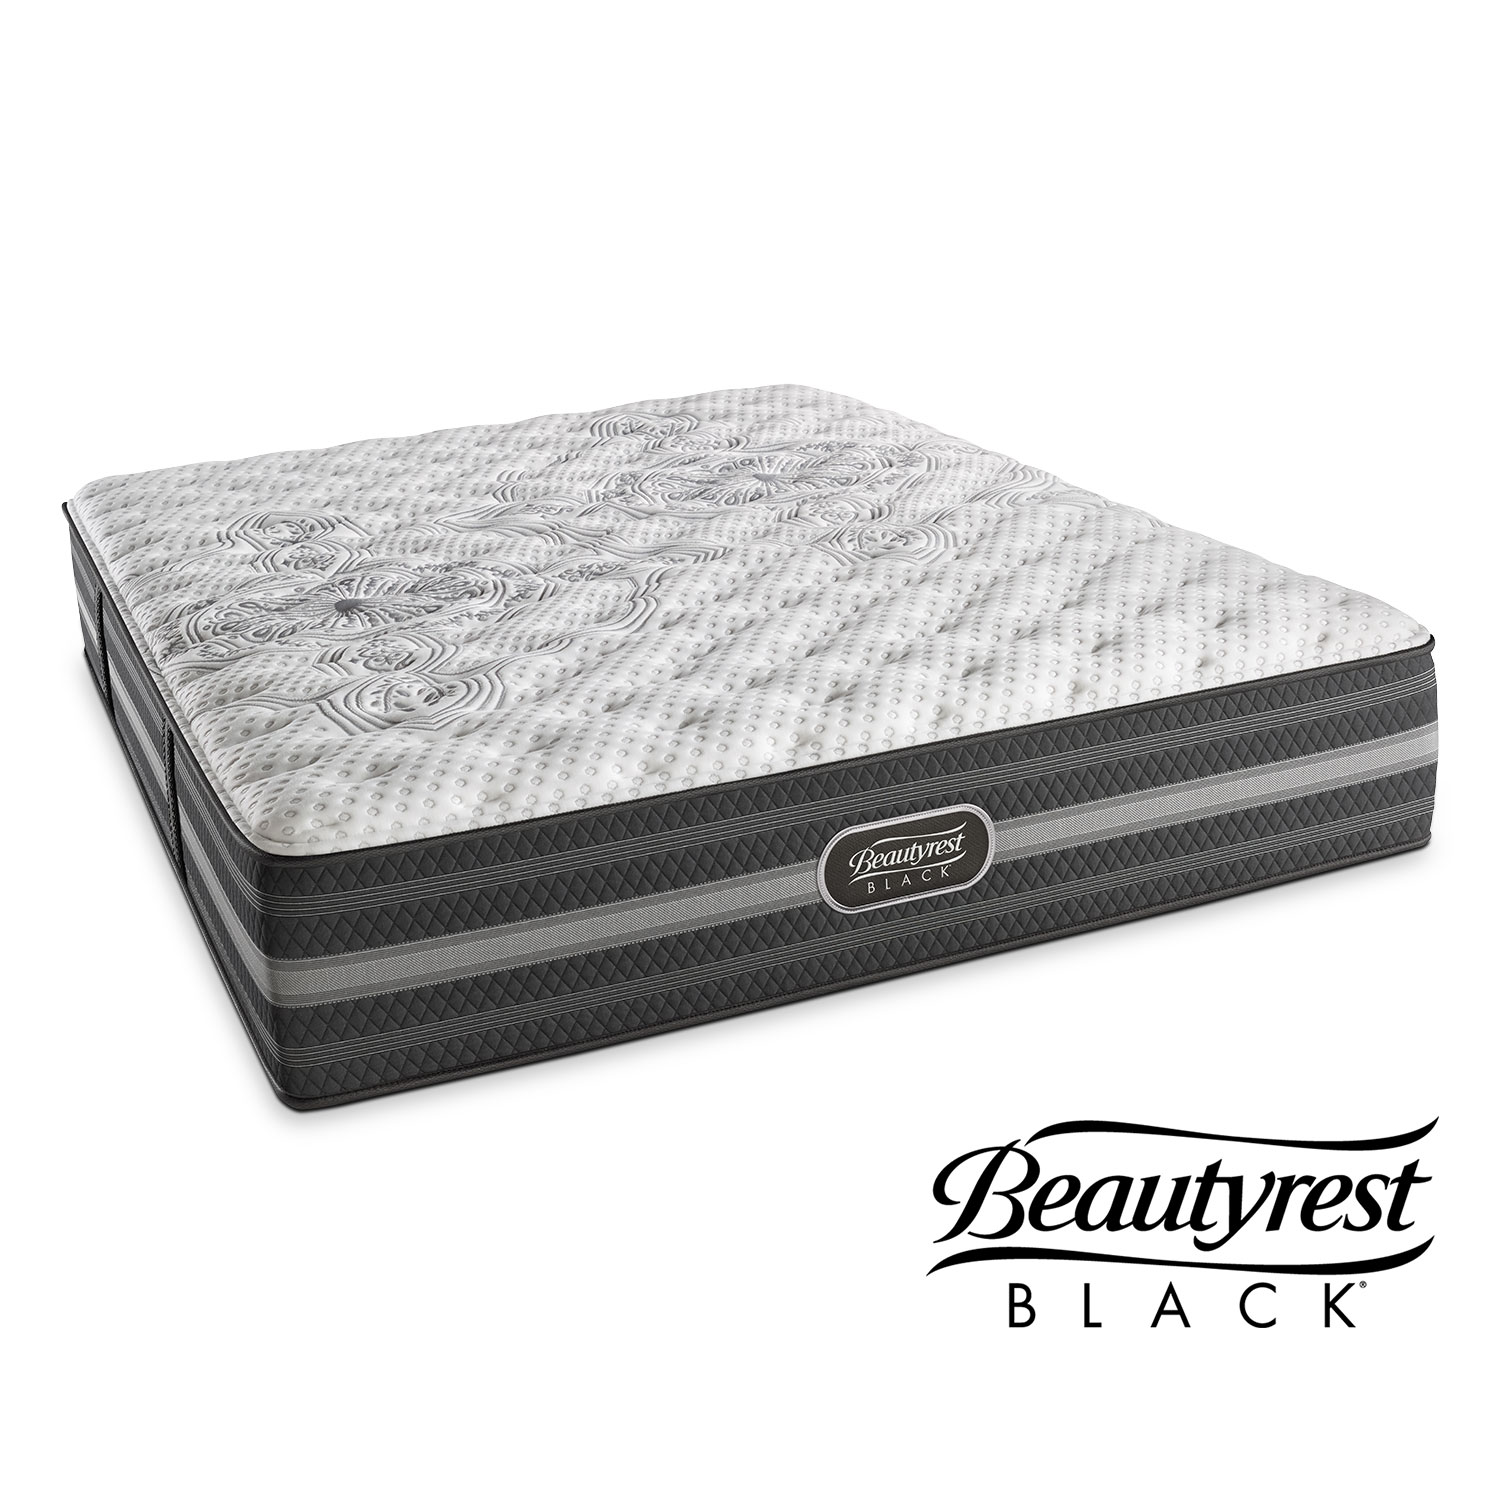 Mattresses and Bedding - Calista Extra-Firm Full Mattress